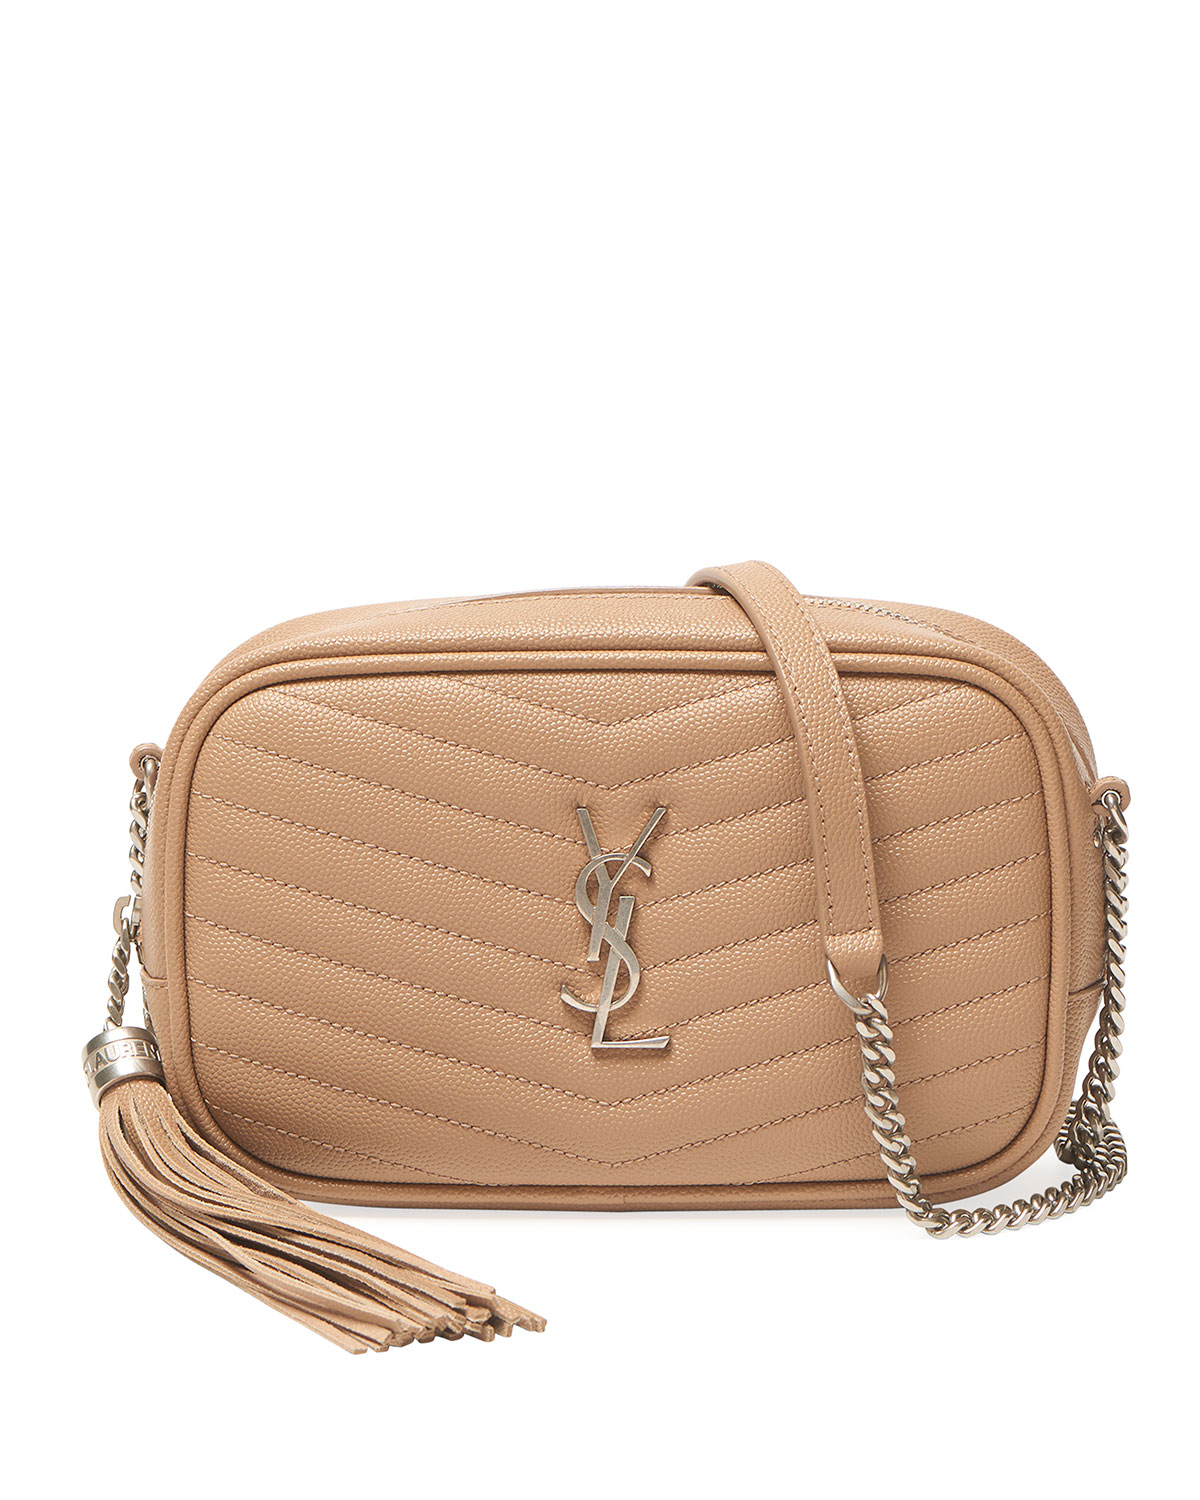 Saint Laurent Lou Mini Monogram Ysl Croco Camera Bag